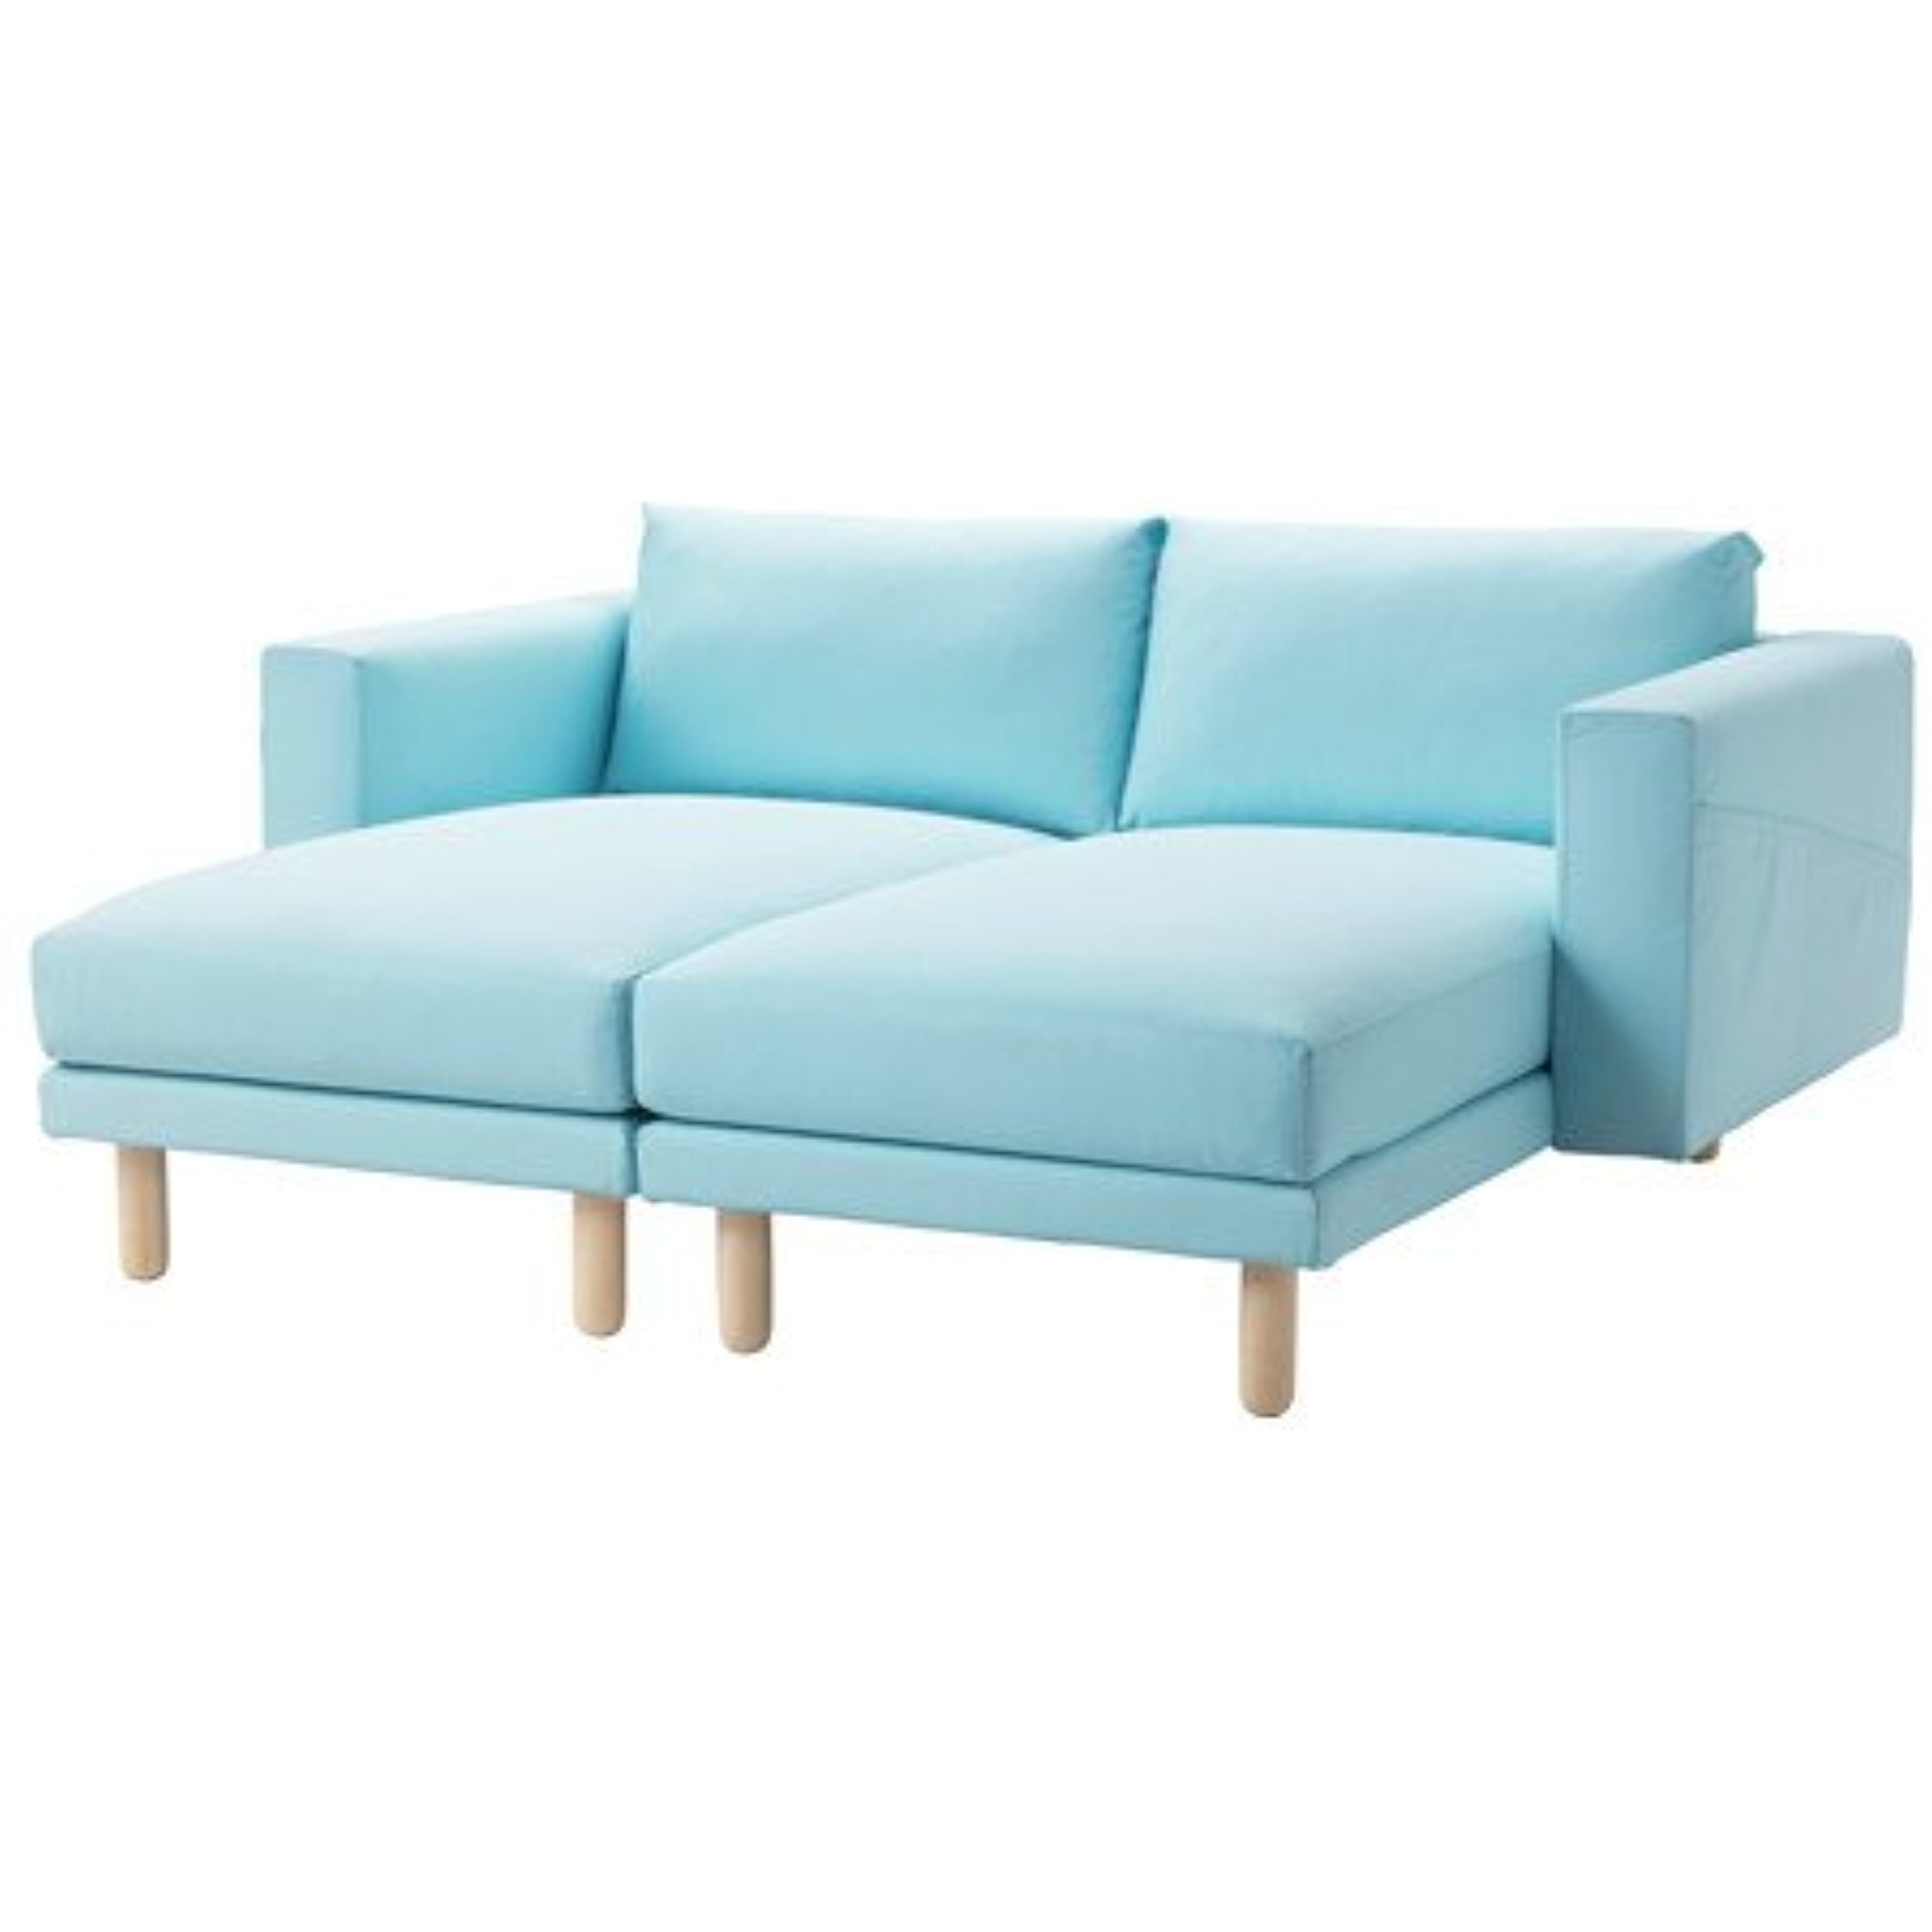 Ikea Sectional 2-seat Edum light blue brich 16204.81714.2222  sc 1 st  Walmart : smaller sectionals - Sectionals, Sofas & Couches